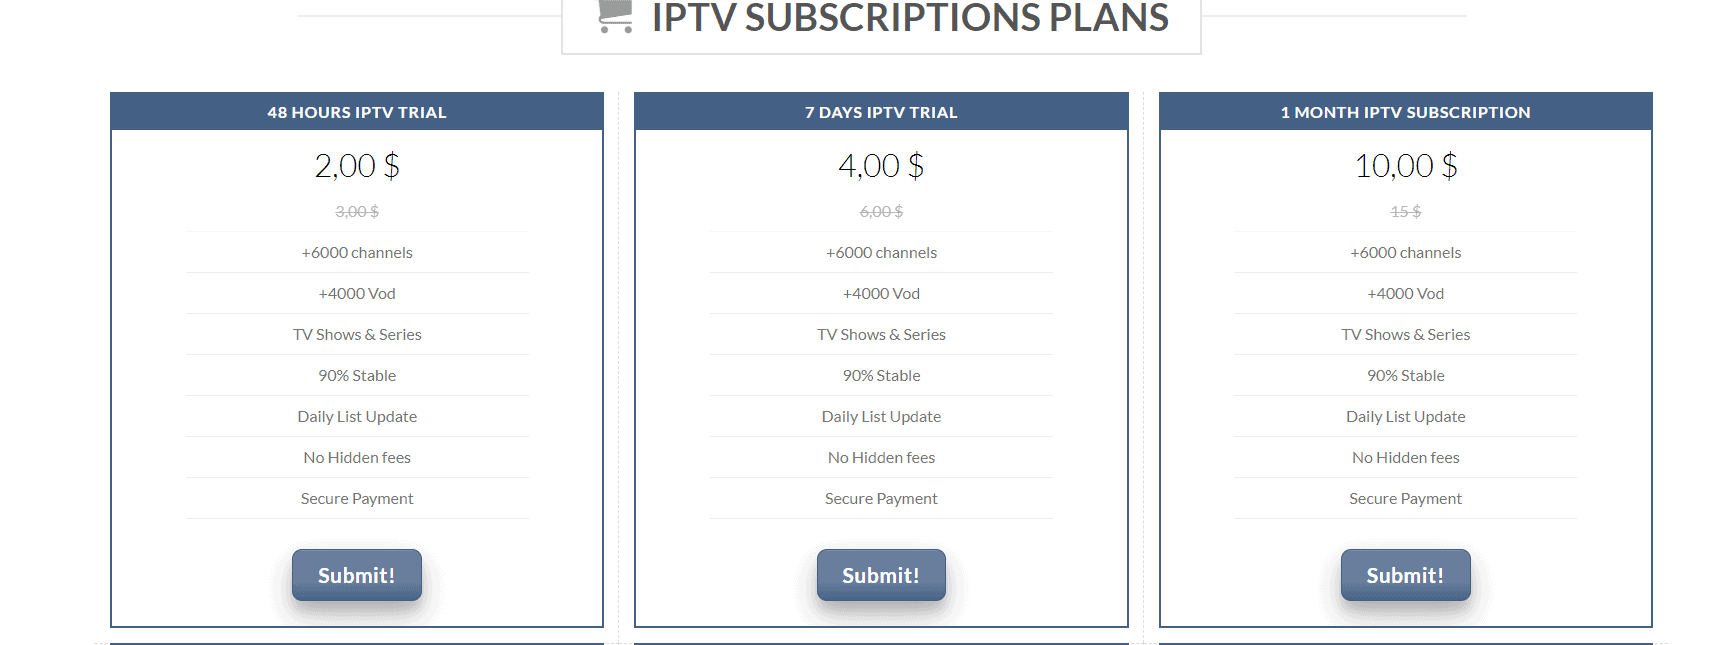 high-iptv-price-1 WHY SHOULD IPTV HIGH SUBSCRIPTION BE CHOSEN?